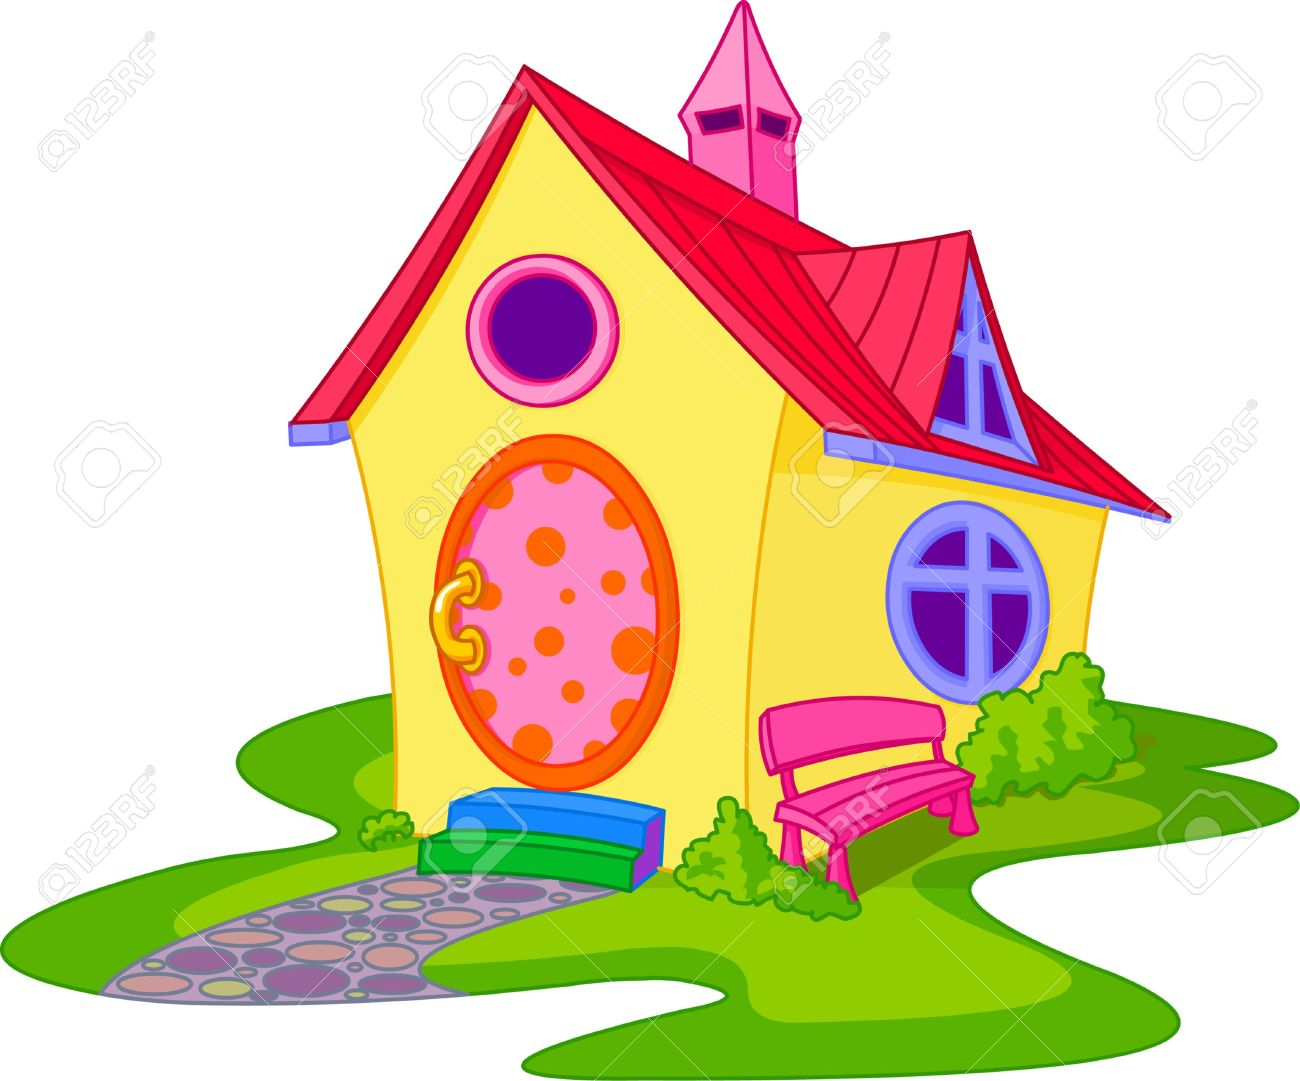 Fantasy Cute House With Front Yard Royalty Free Cliparts, Vectors.